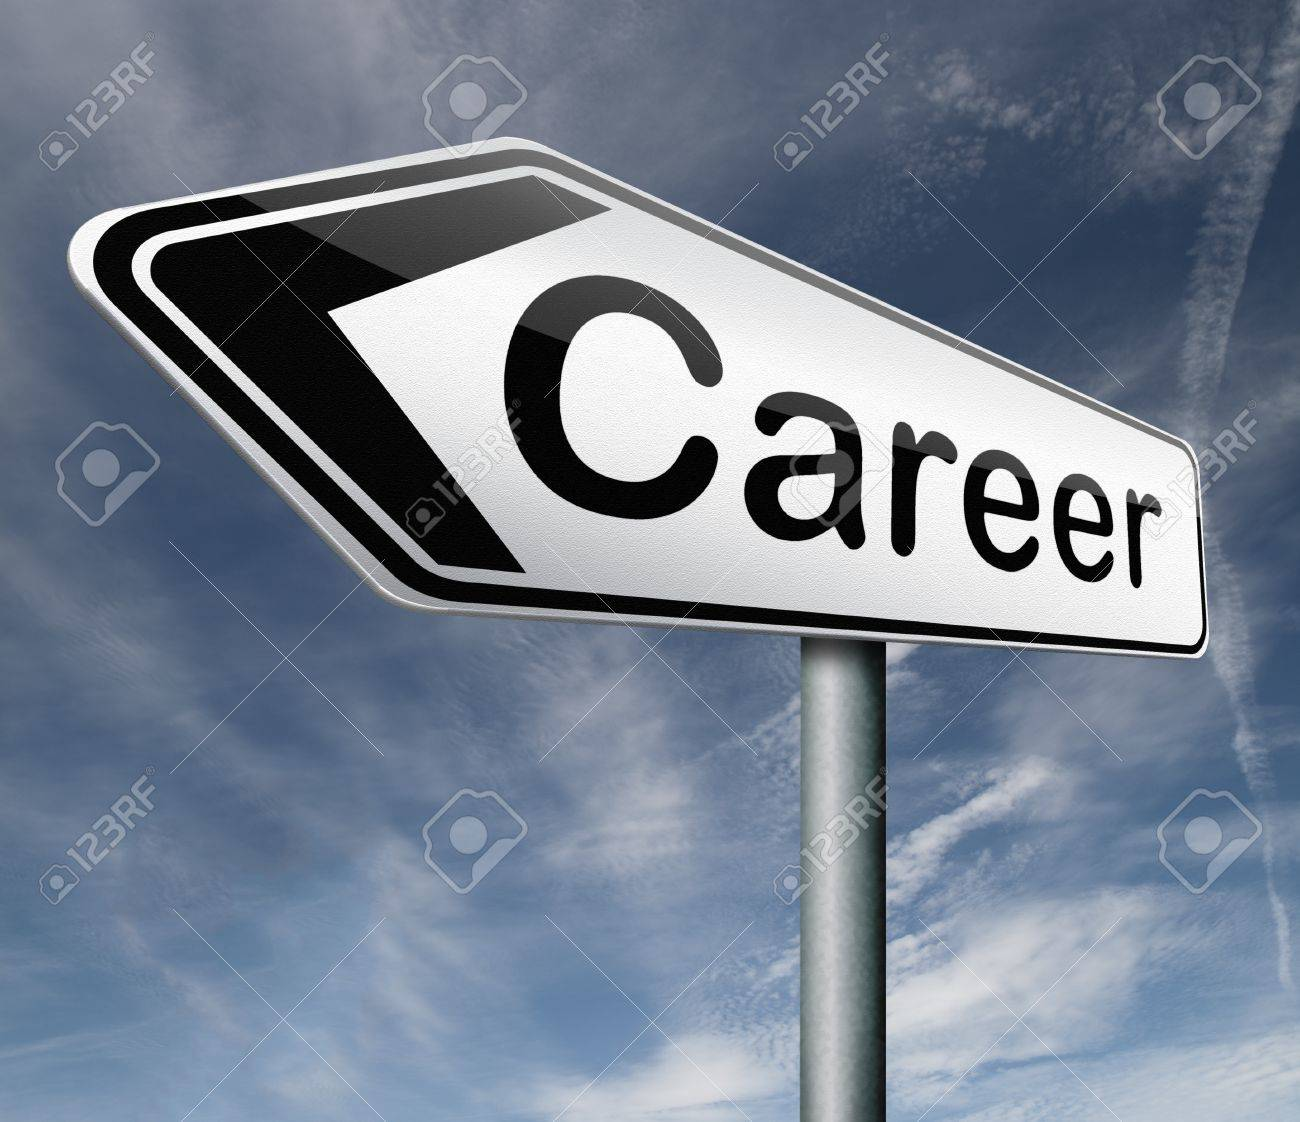 career opportunity search and dream job promotion career stock photo career opportunity search and dream job promotion career button career icon job icon job button arrow